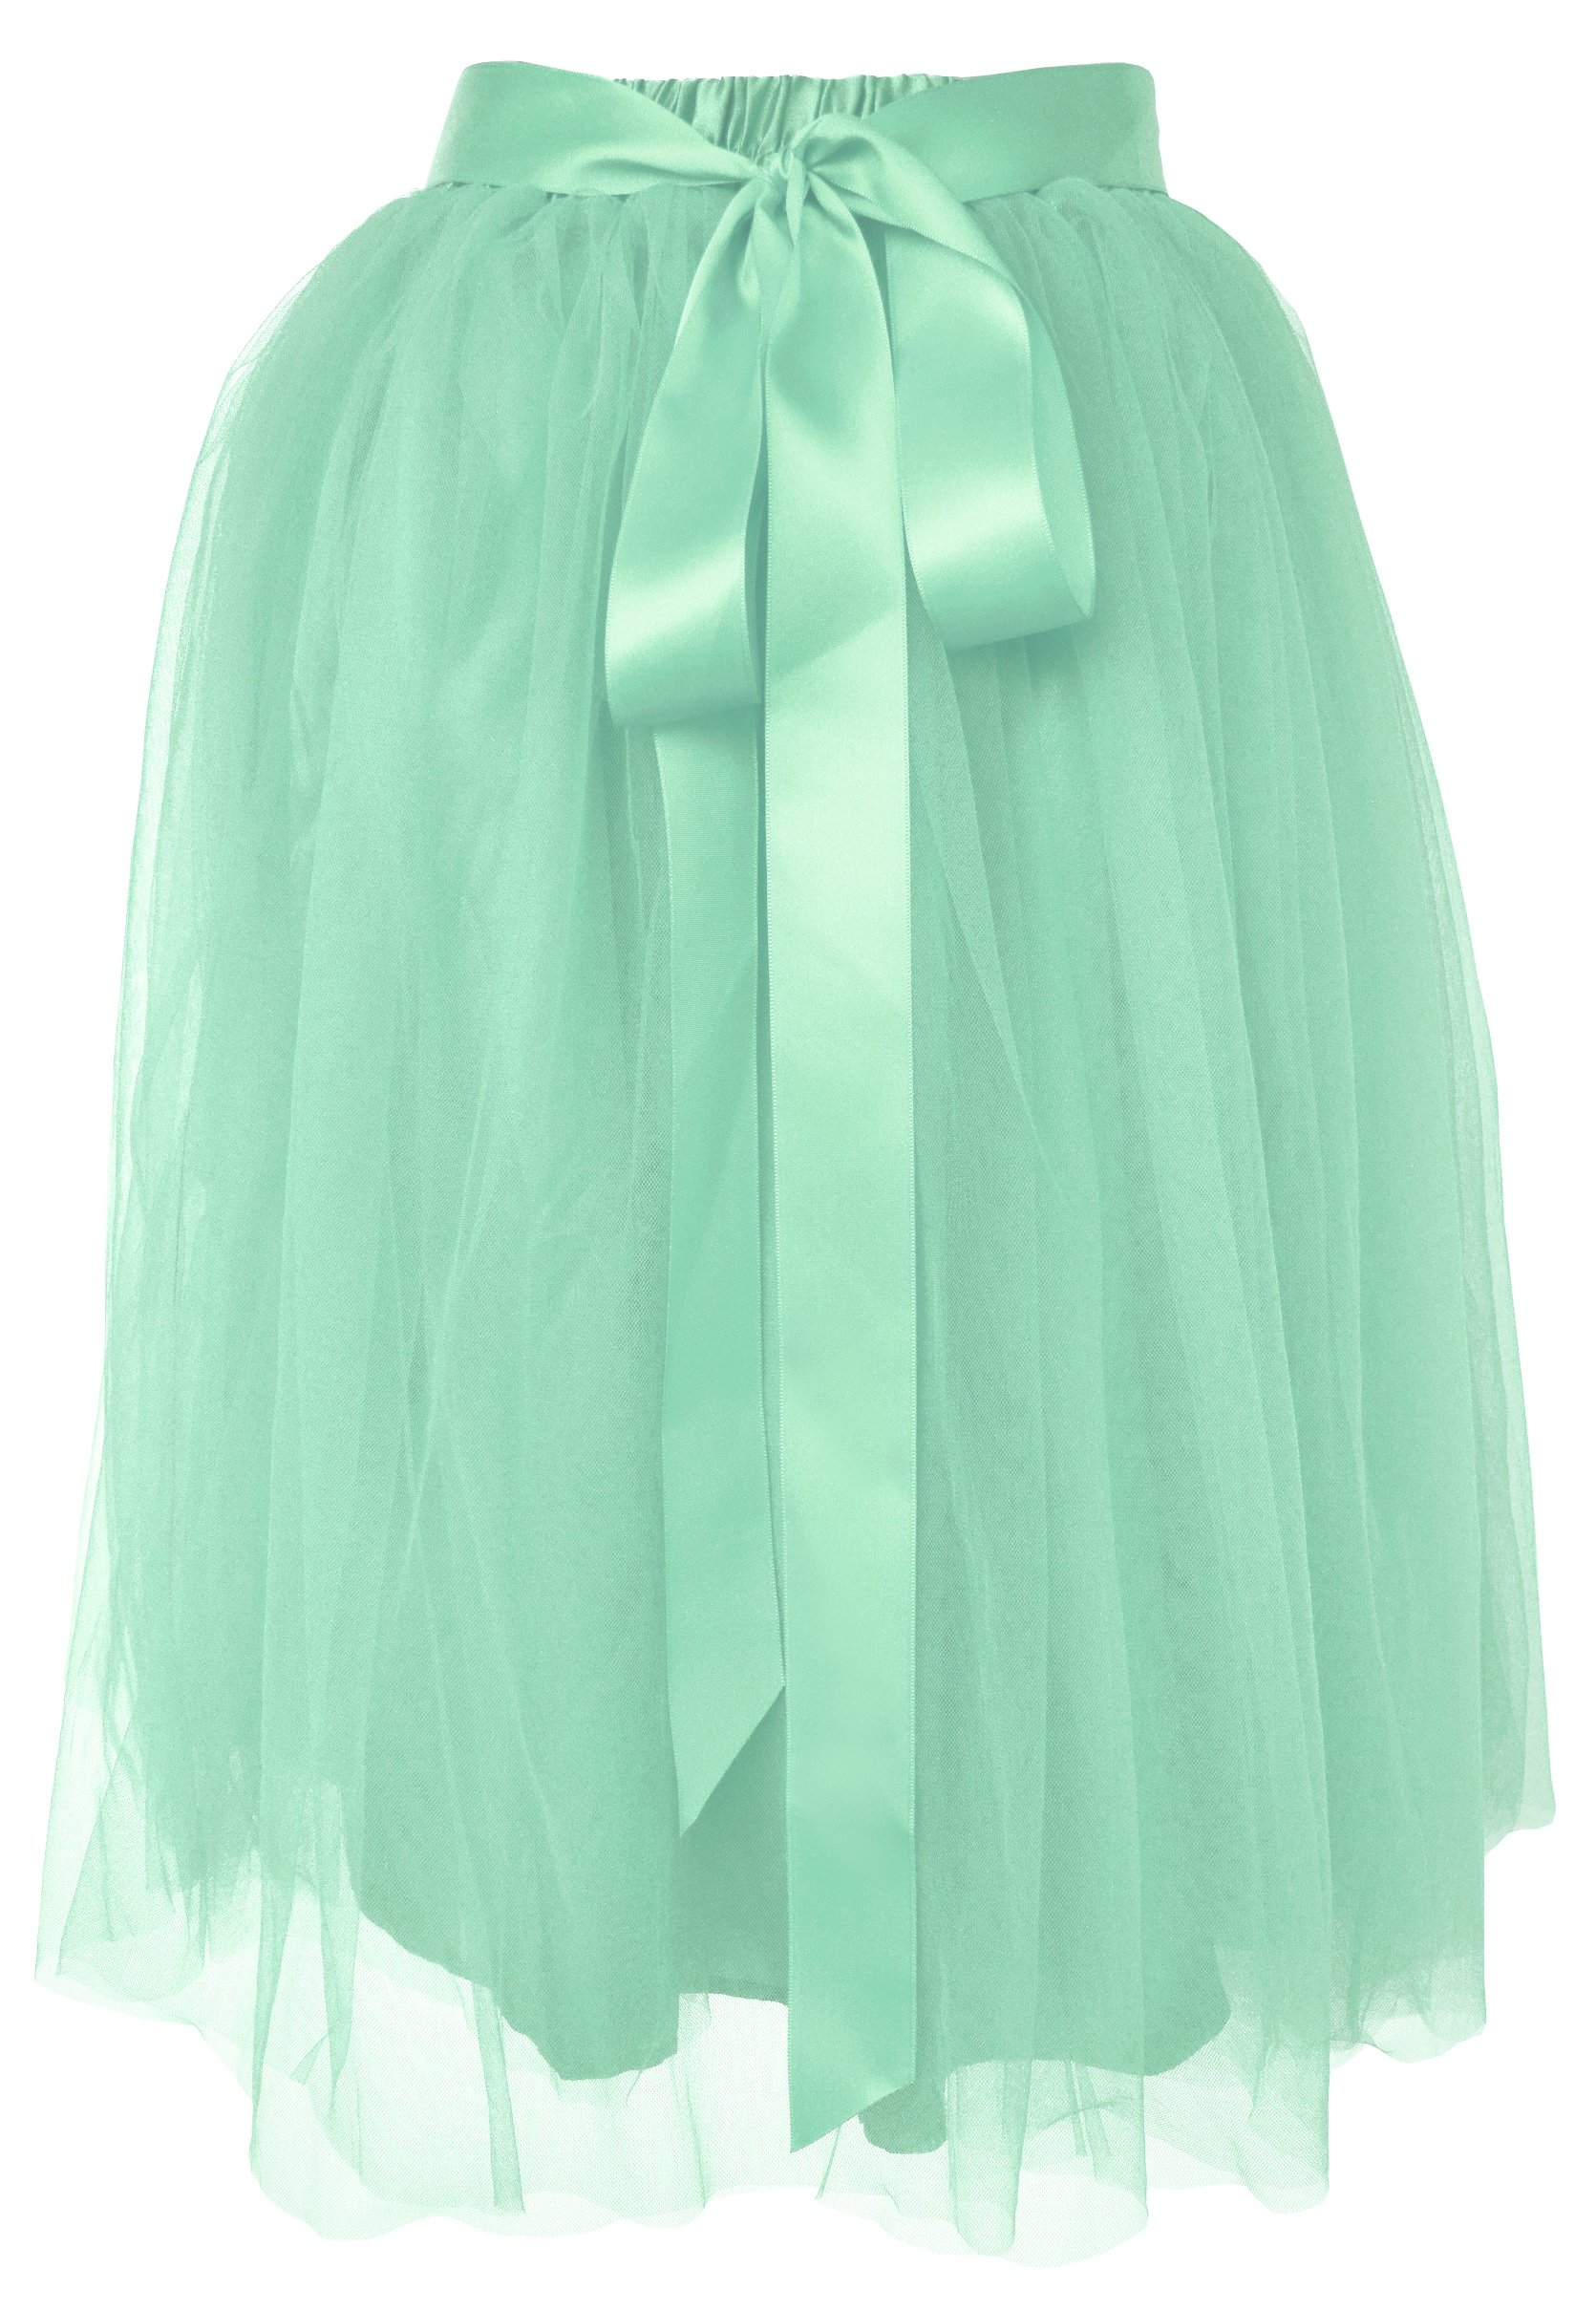 Dancina Women's Knee Length Tutu A Line Layered Tulle Skirt Size Plus 12-24 Pastel Mint